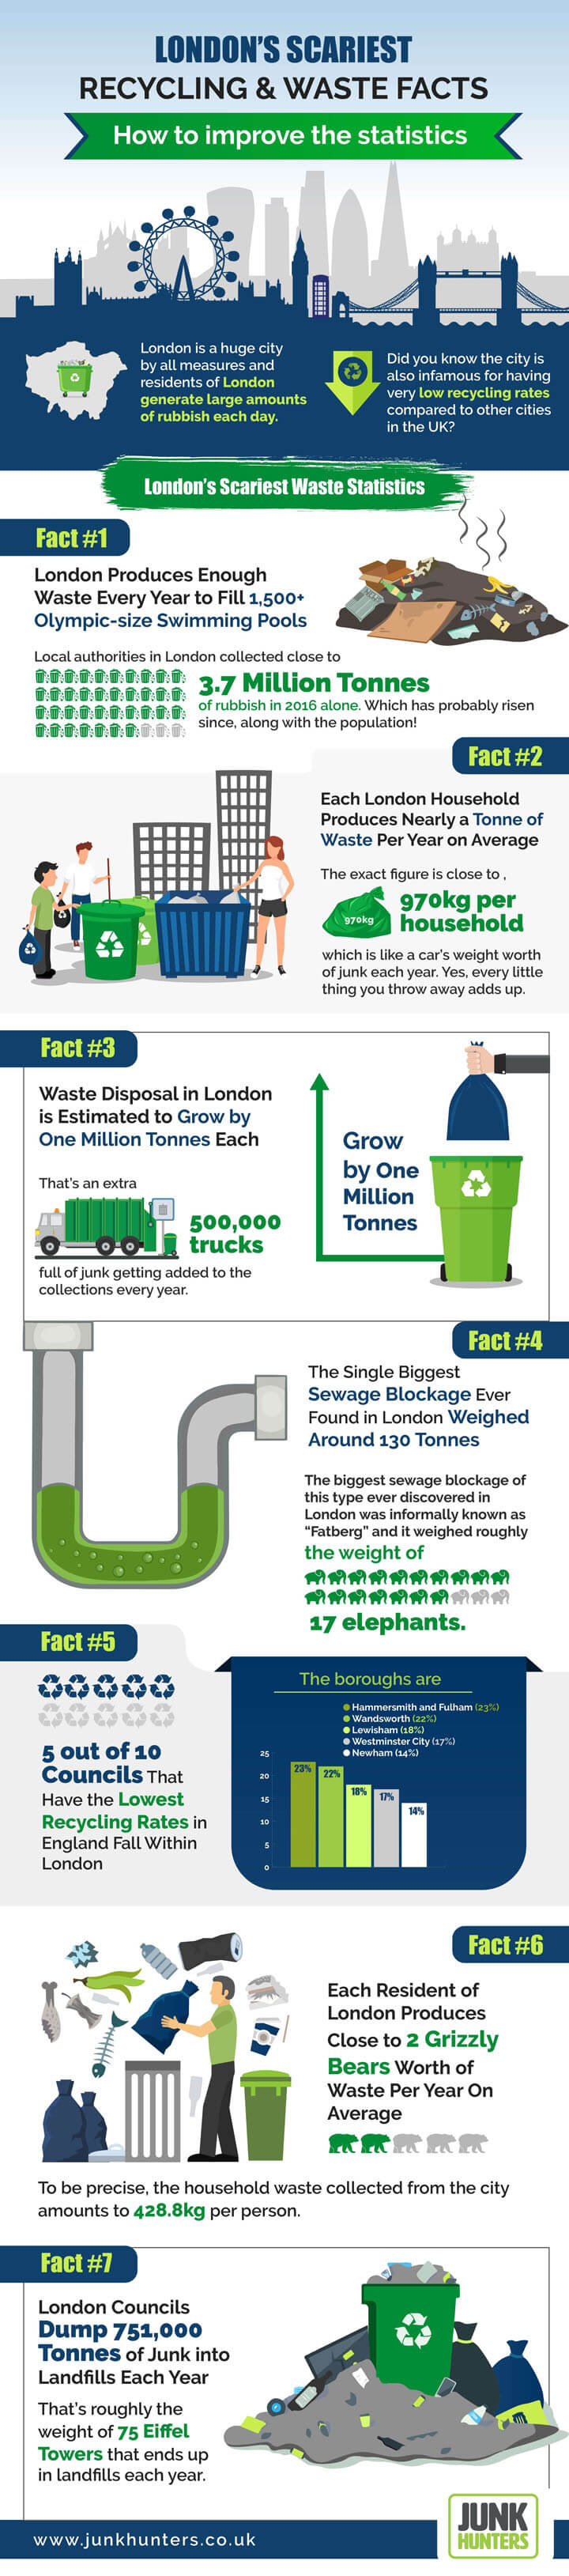 Recycling in London Infographic